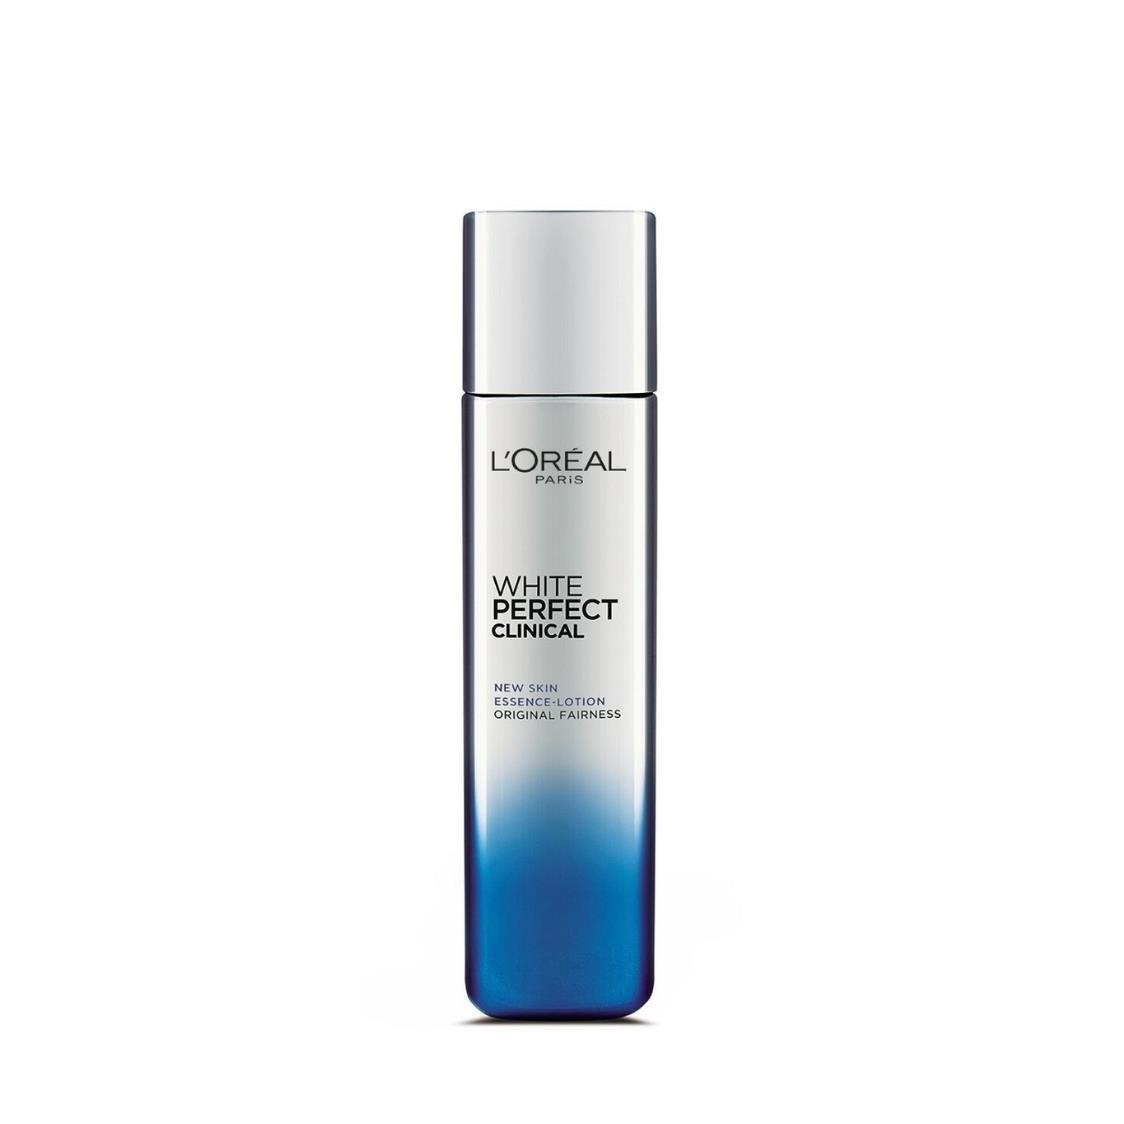 White Perfect Clinical Essence Lotion 175ml